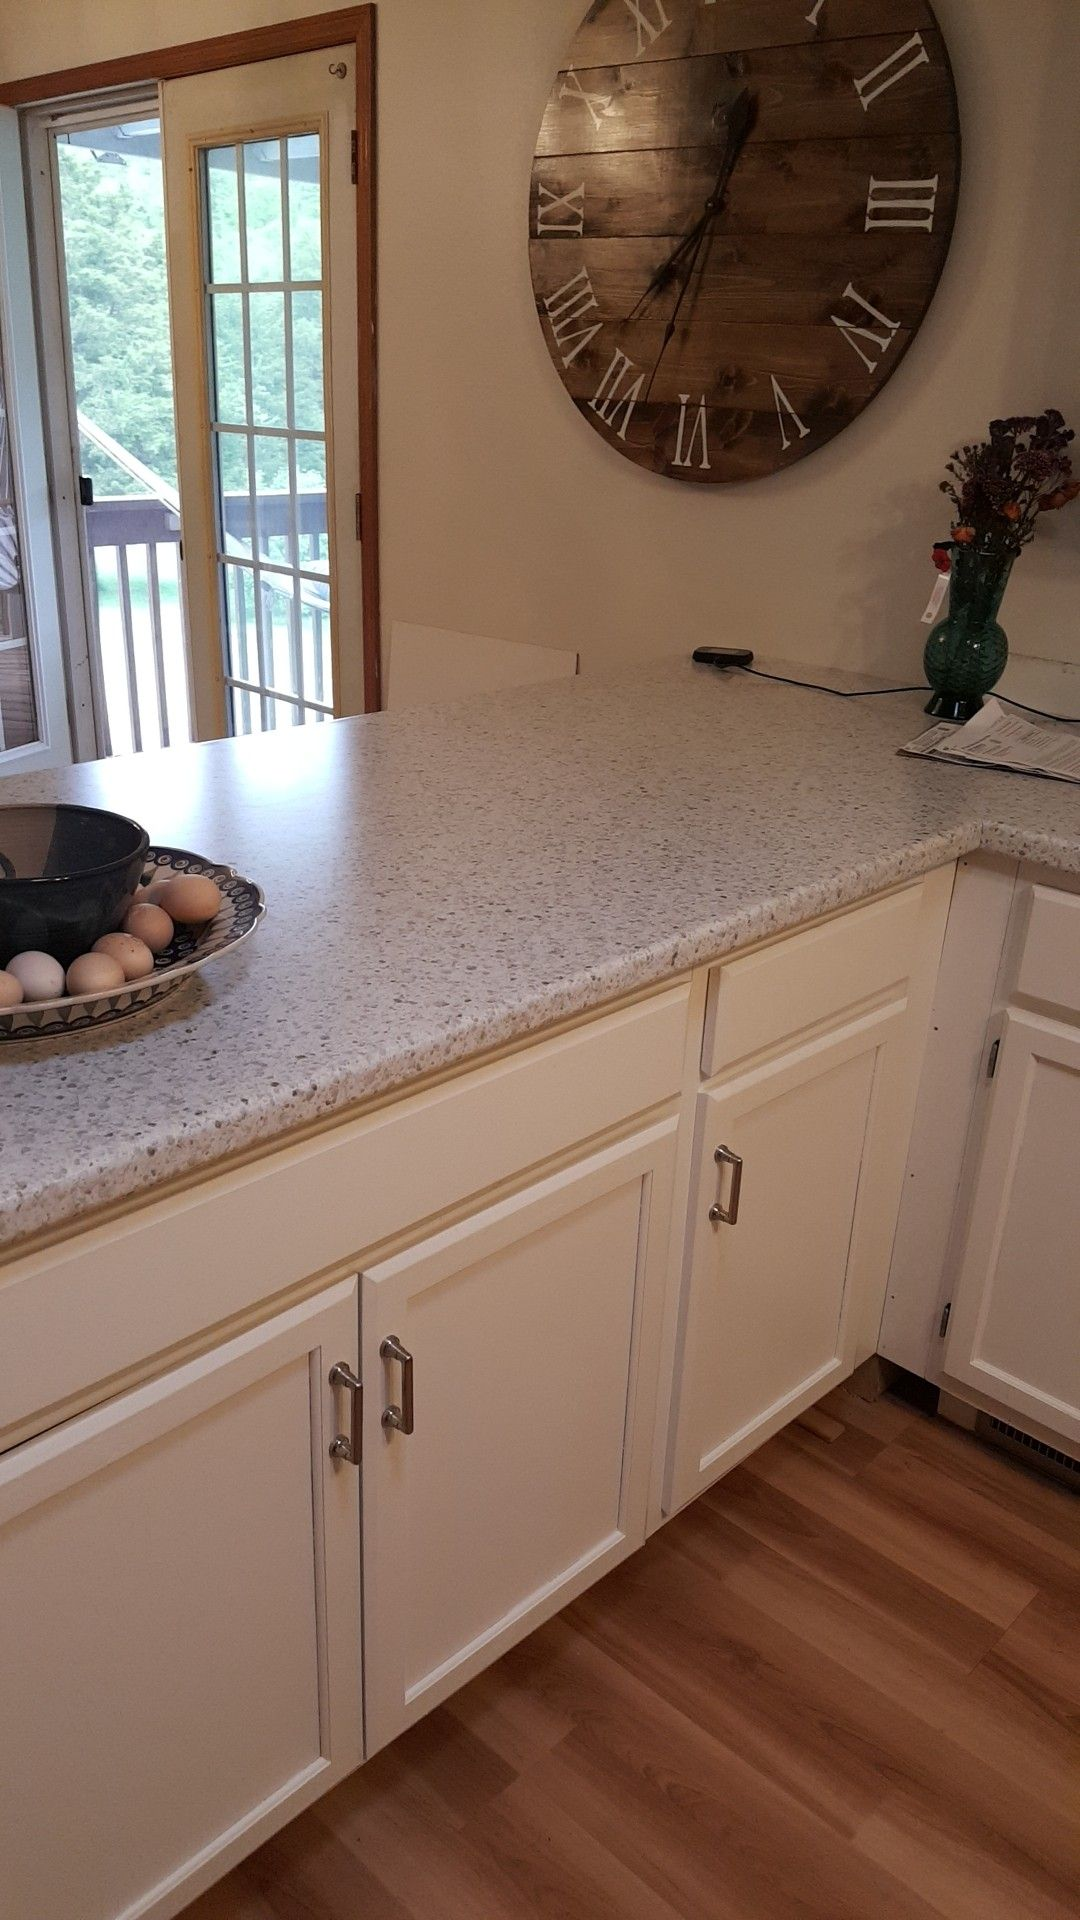 Wilsonart Laminate Countertop In Leche Vesta You Can See The Updated Kitchen Above Or Another Pin I Created